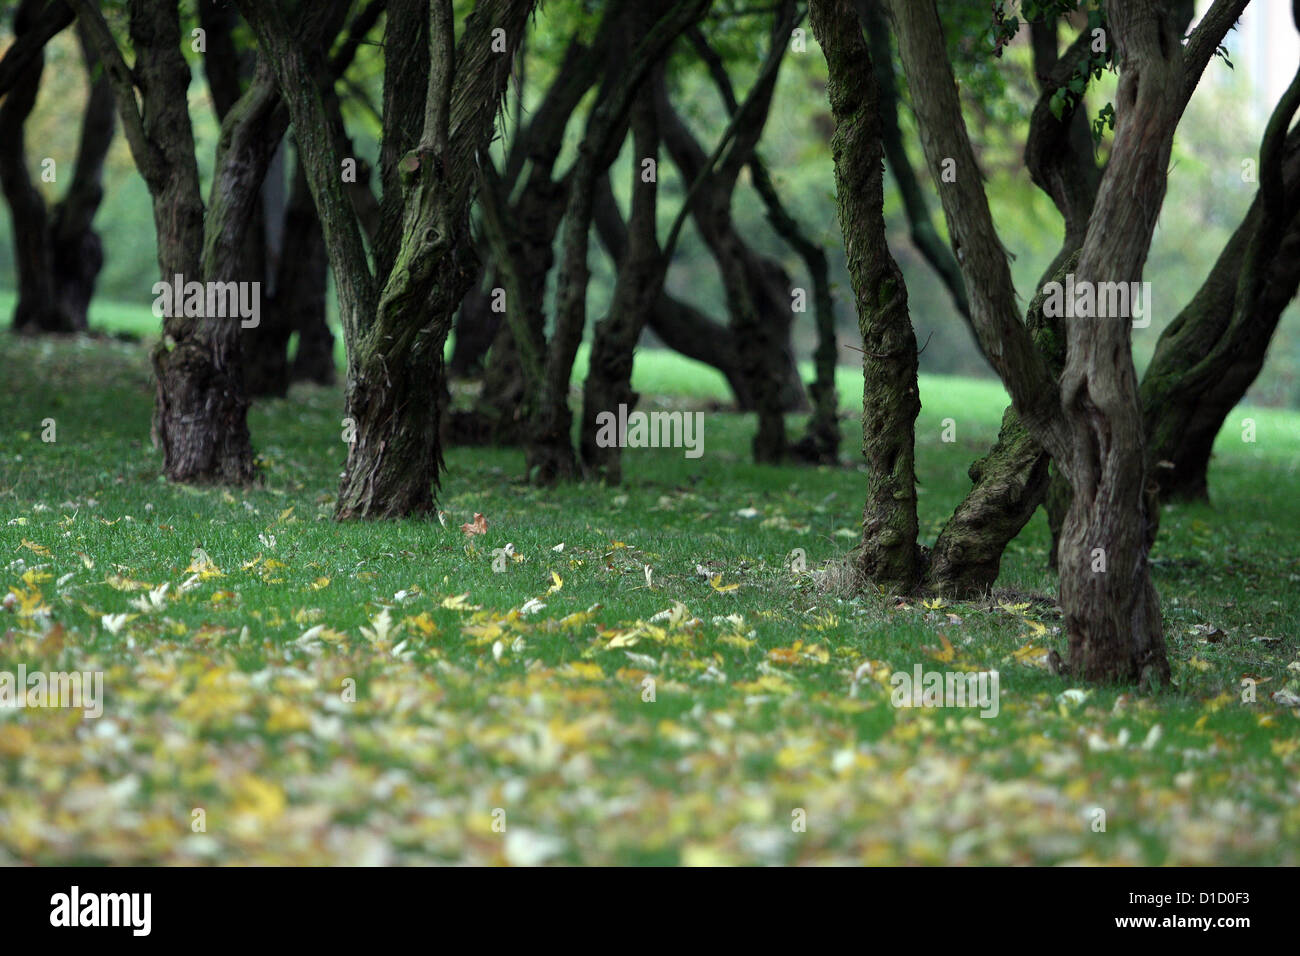 Garden of twisted tree trunks - Stock Image